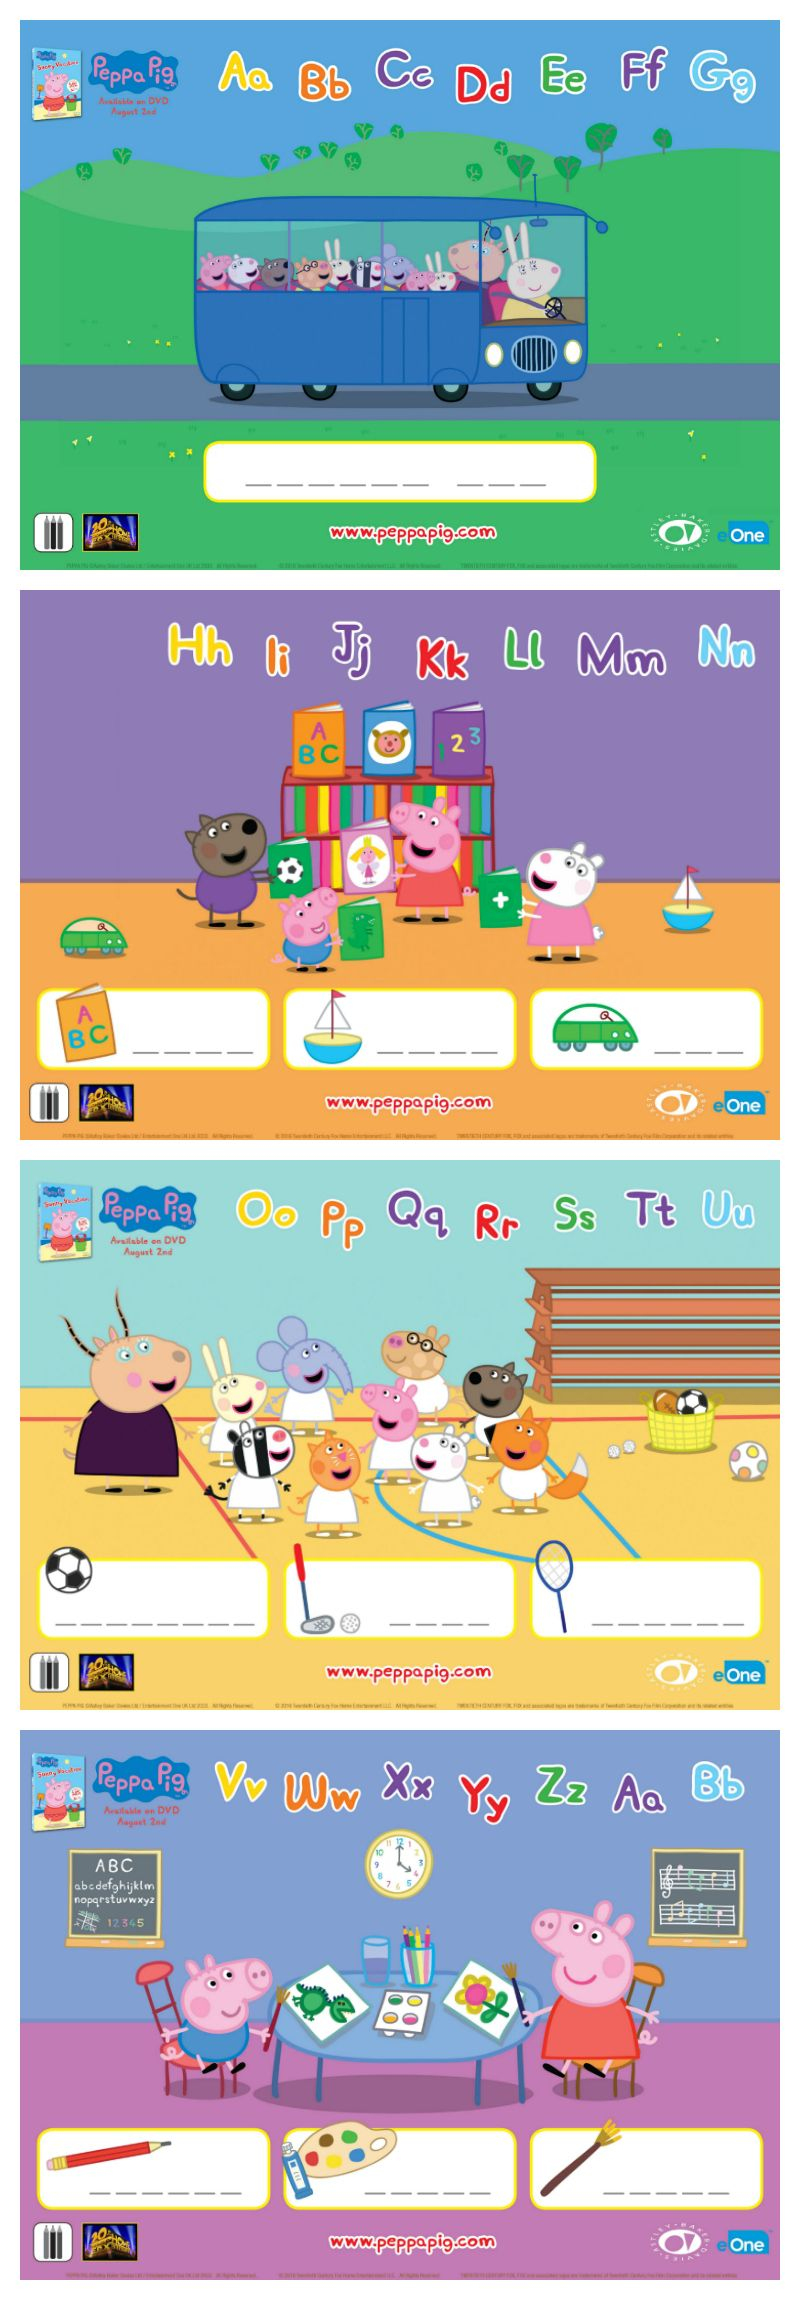 Image Peppa Pig A Imprimer Beau Collection Free Peppa Pig Printable Word Puzzles Peppa